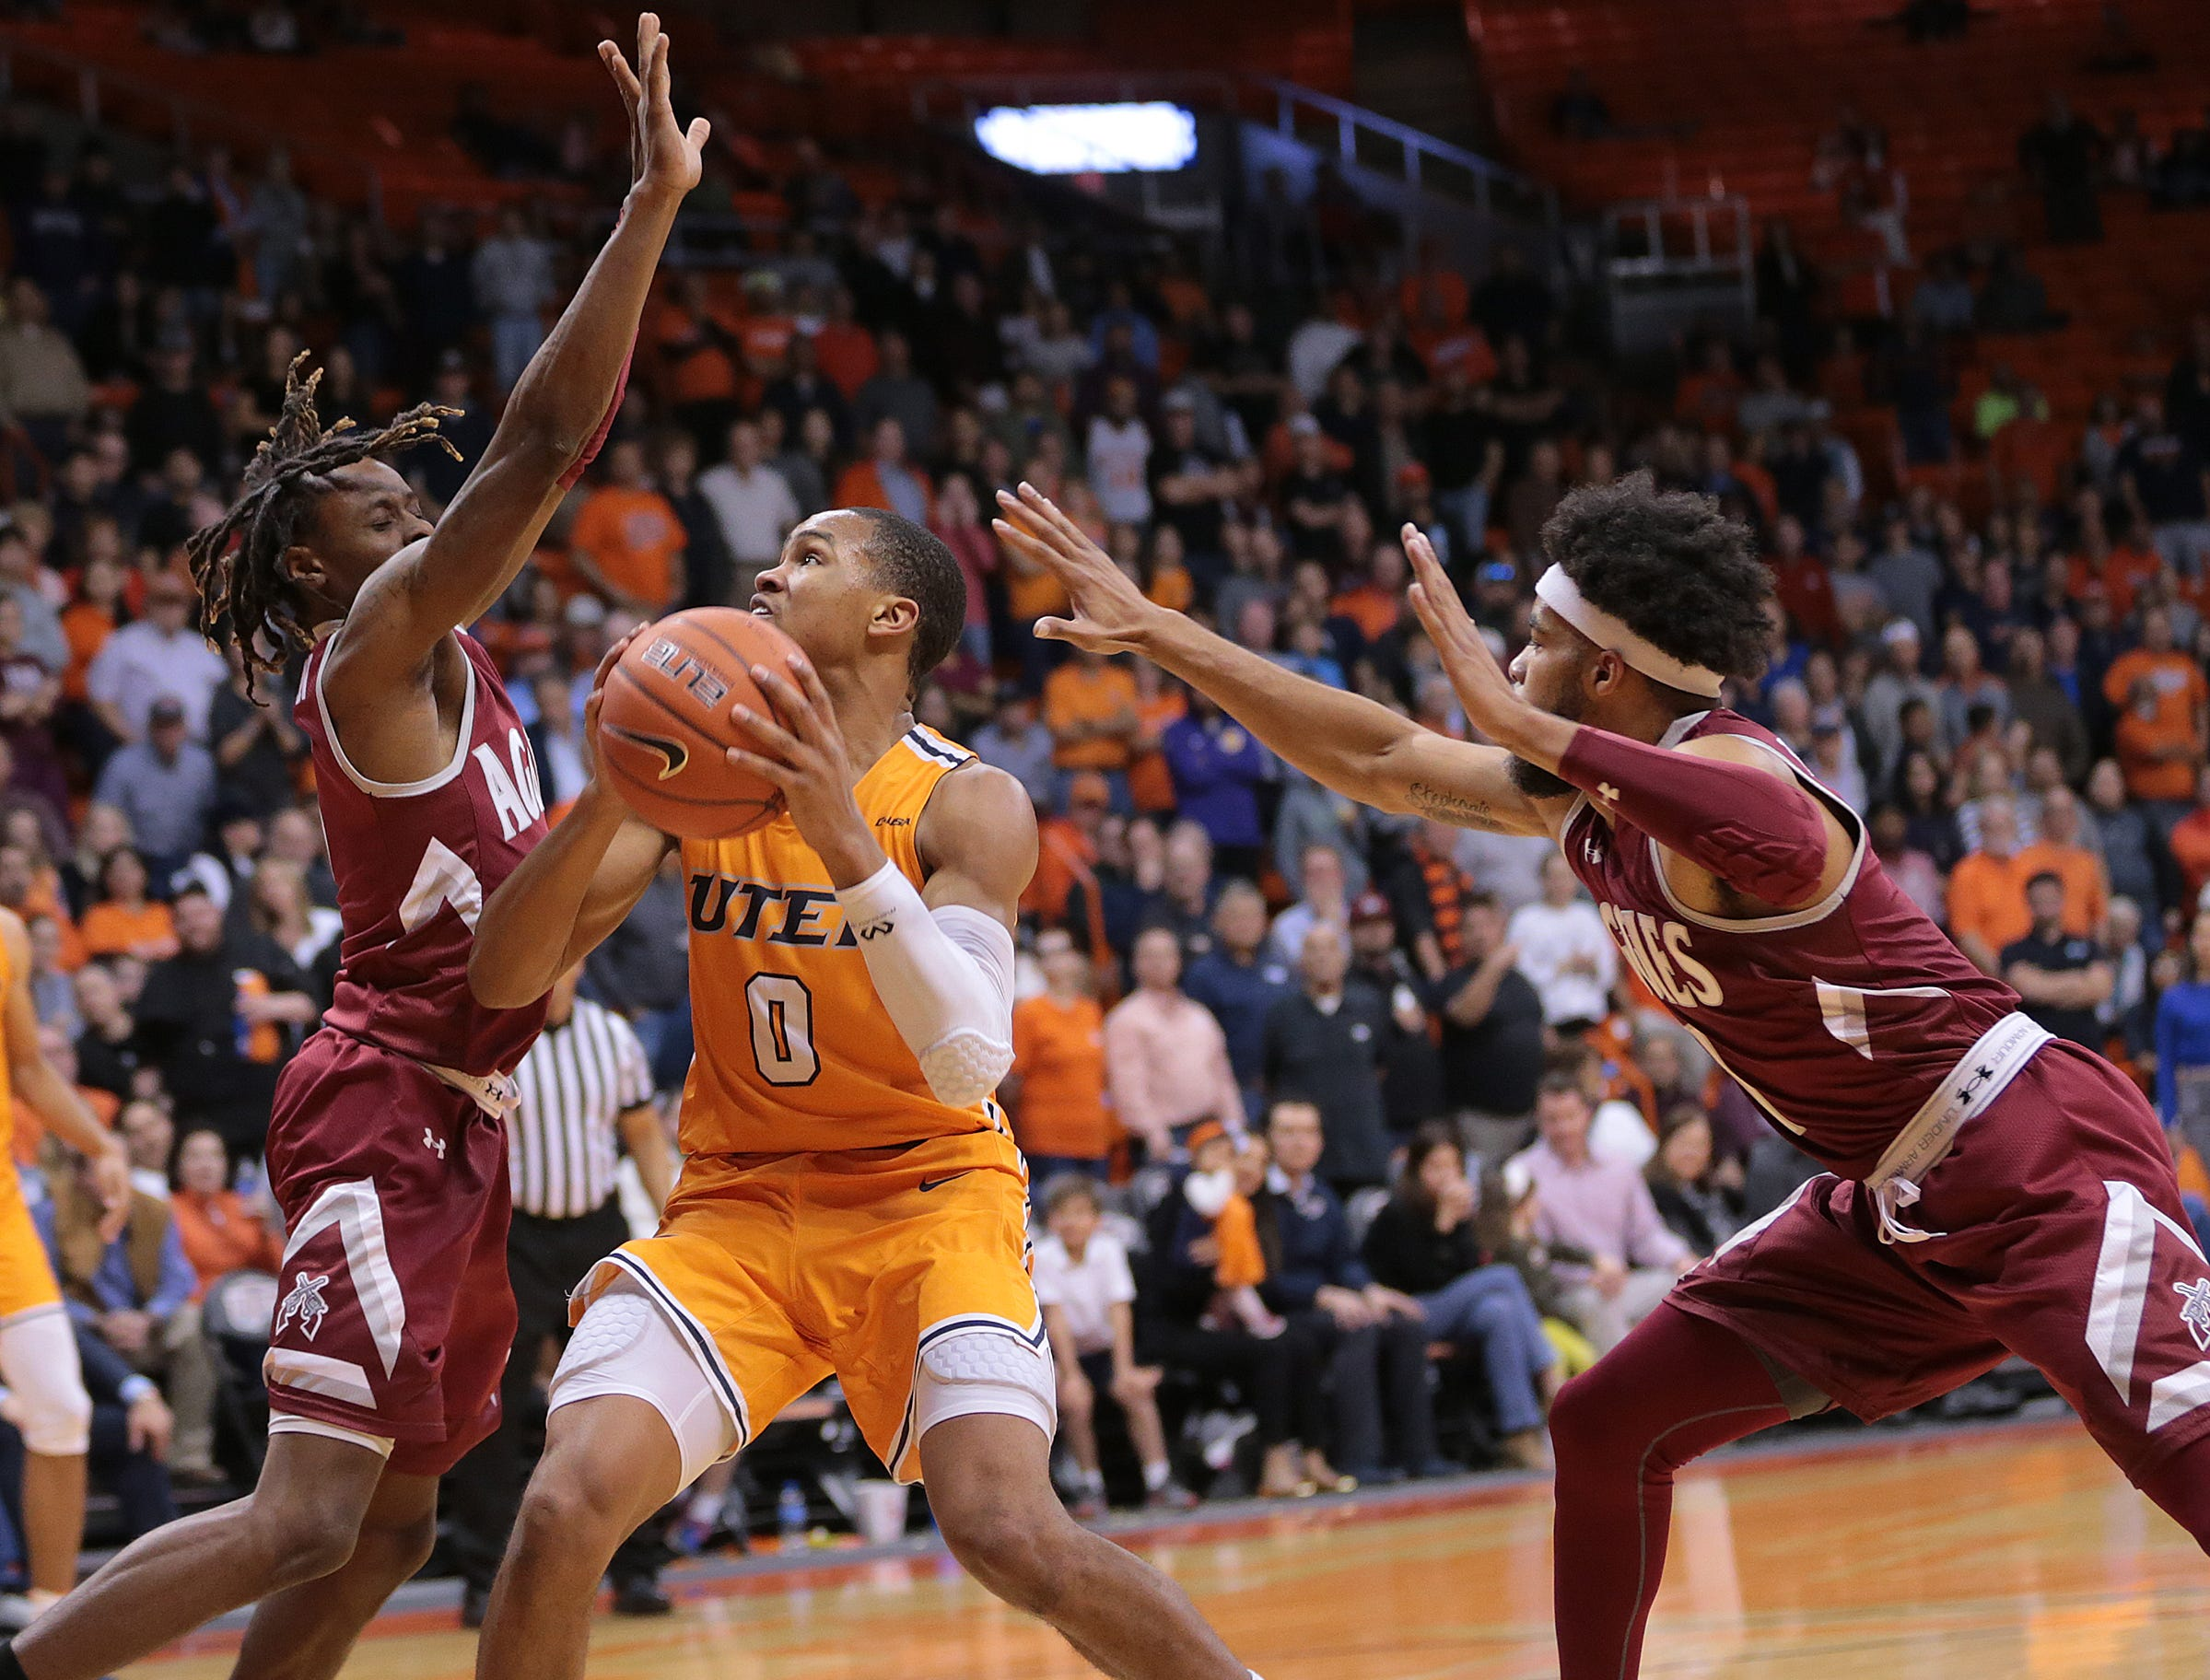 UTEP battled NMSU on Wednesday night at the Don Haskins Center. NMSU held on to win 62-58.